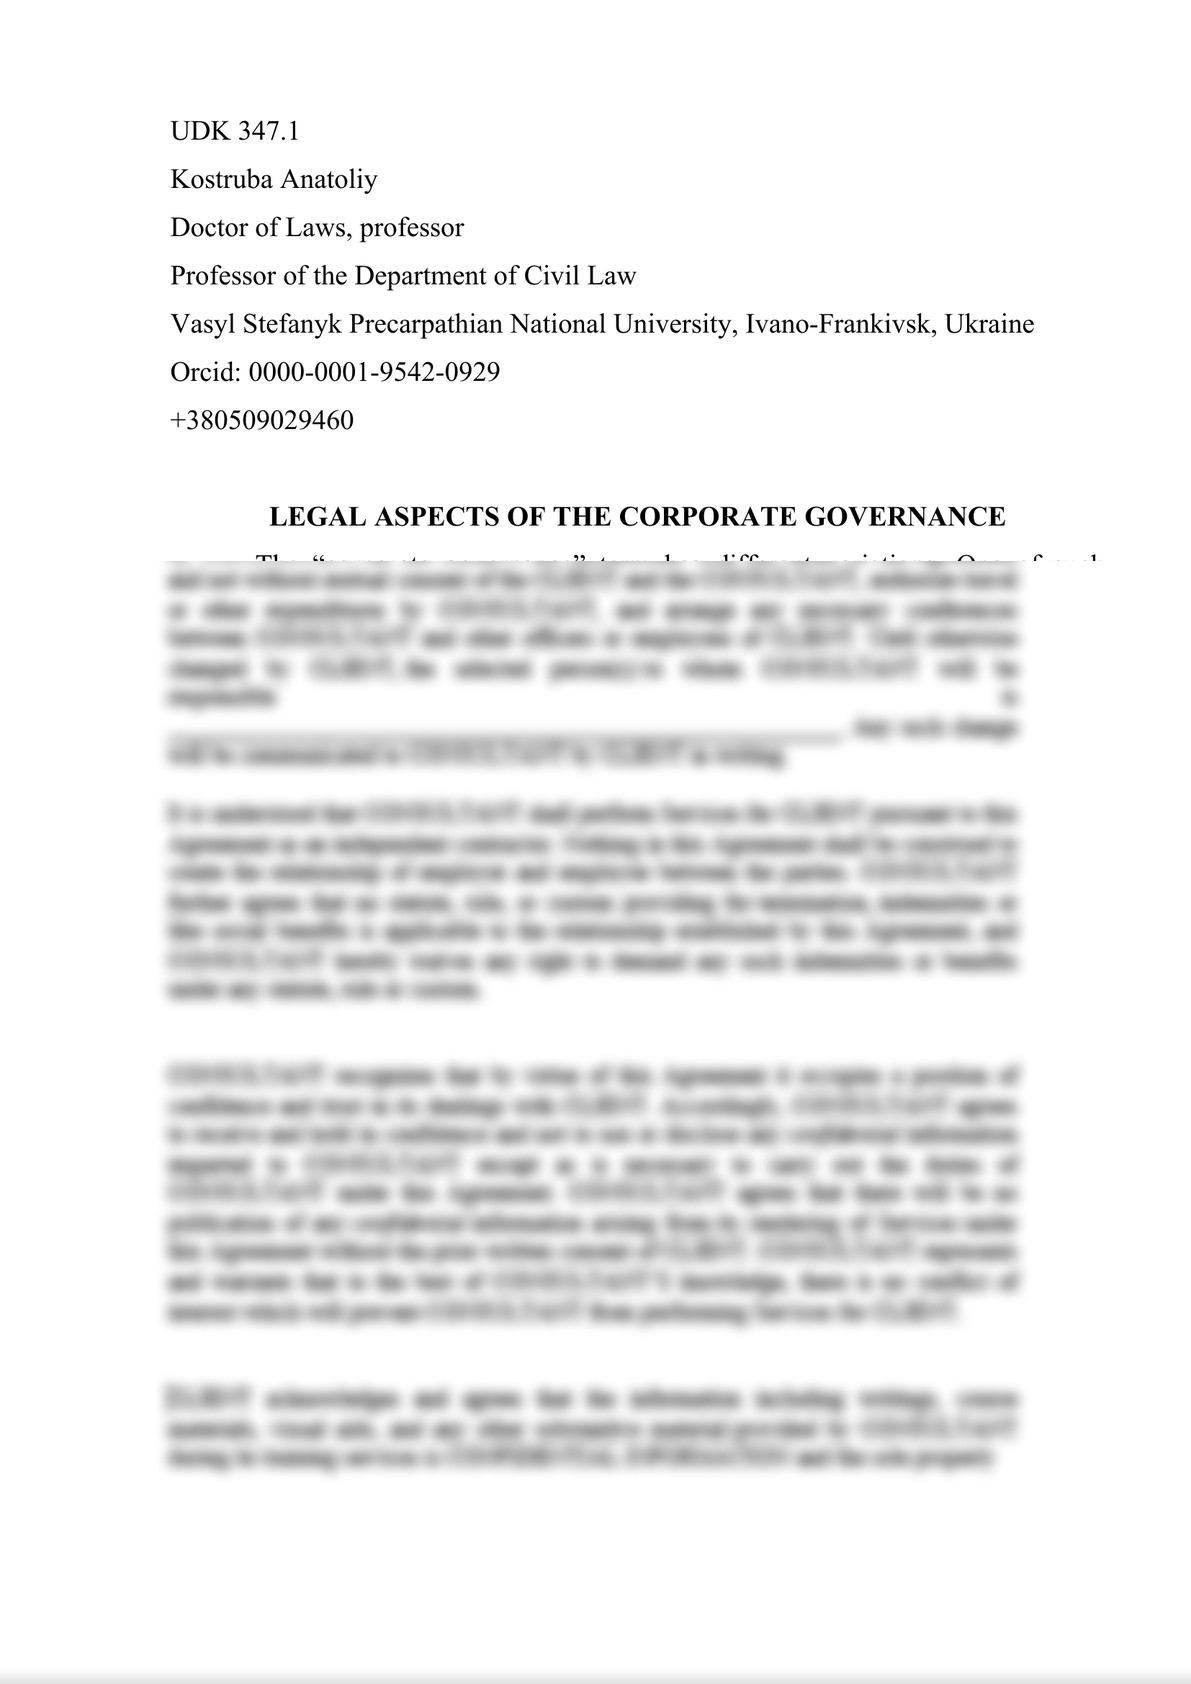 LEGAL ASPECTS OF THE CORPORATE GOVERNANCE-0